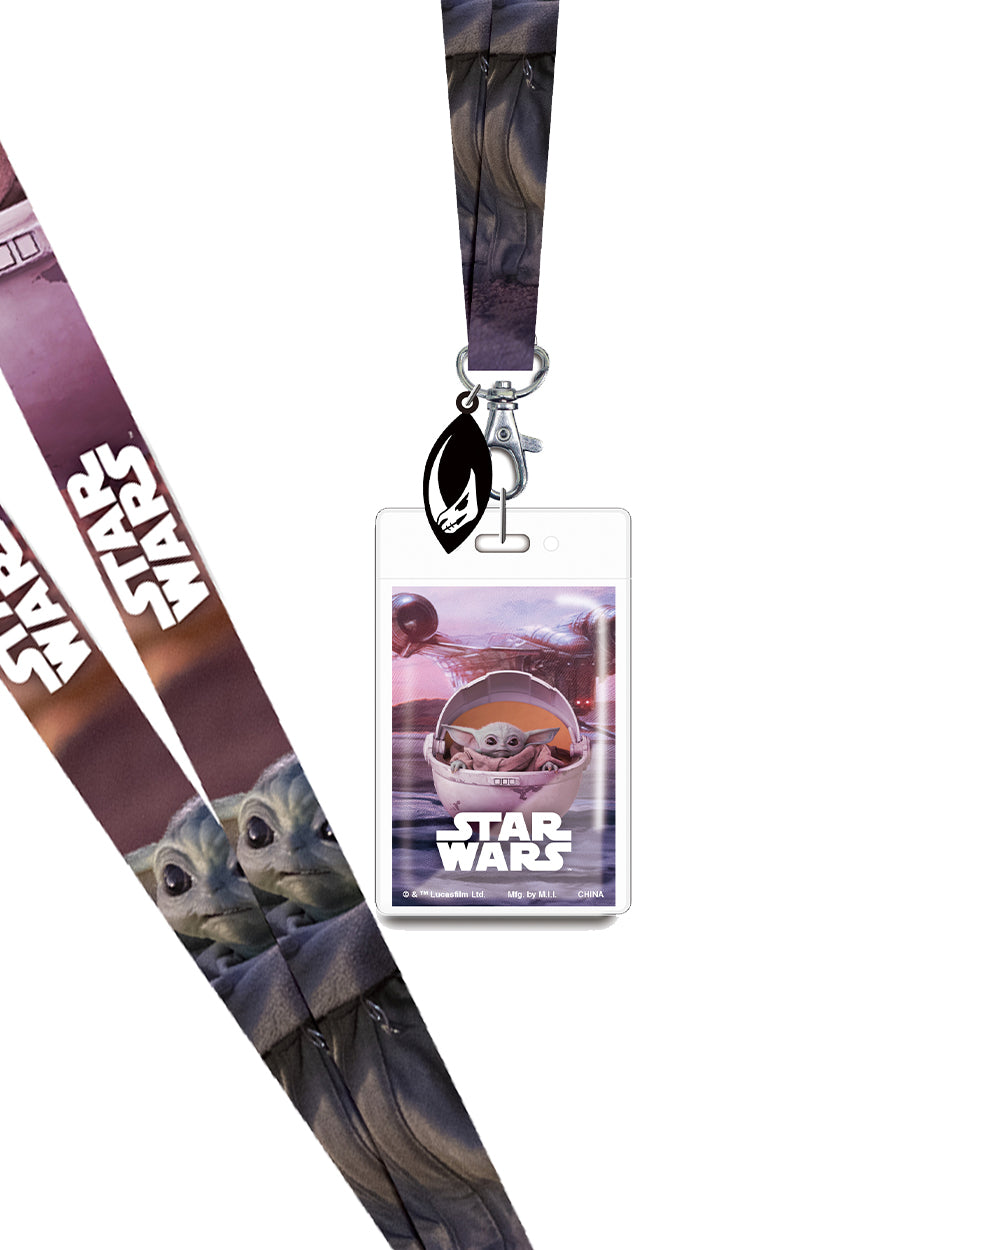 Star Wars The Mandalorian Lanyard - The Pink a la Mode - Monogram - The Pink a la Mode